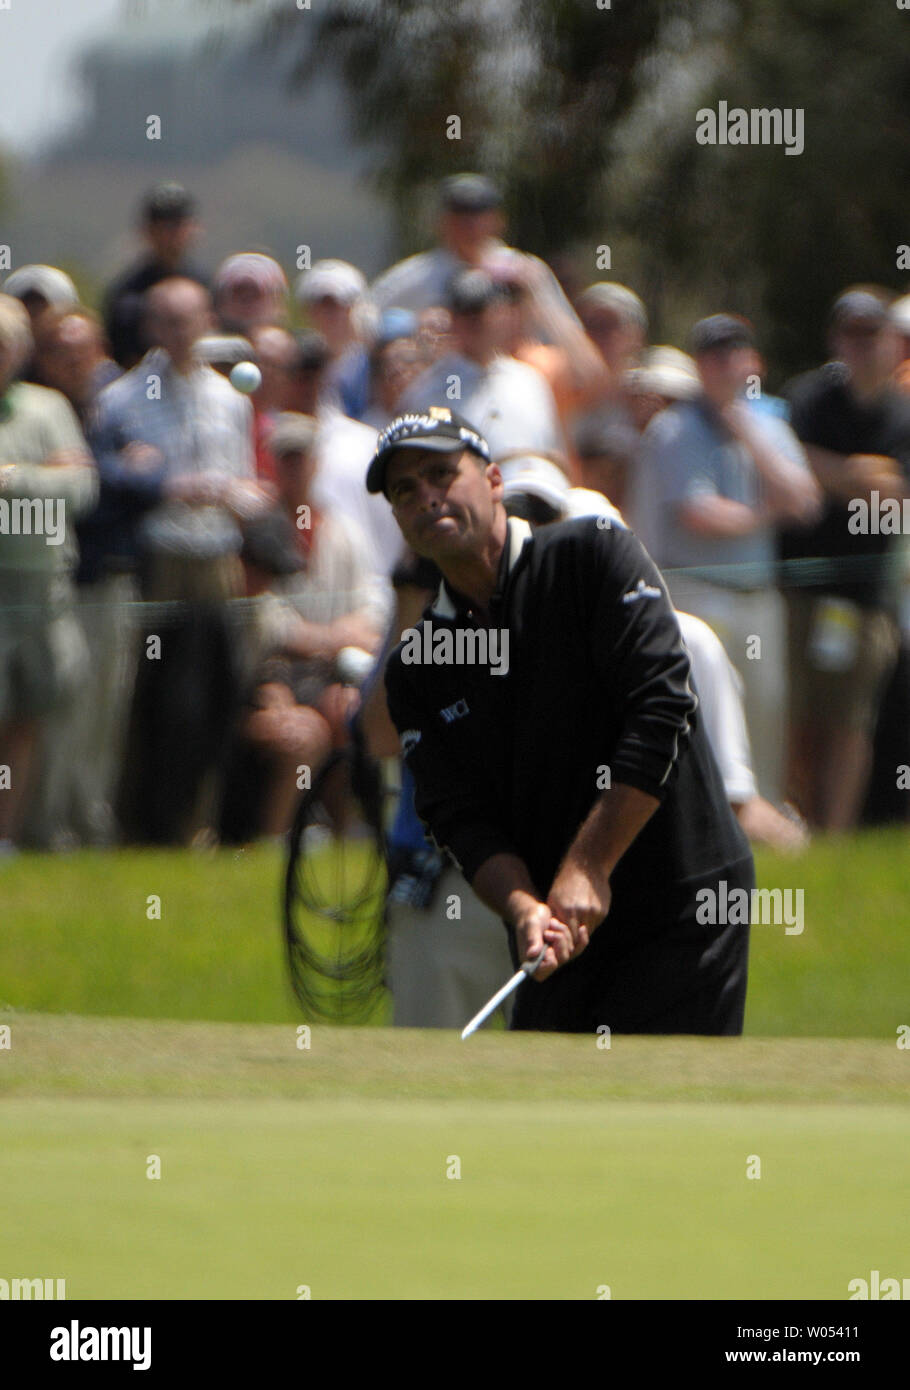 Rocco Mediate chips onto the 6th green during the last day of regular play of the US Open at Torrey Pines Golf Course in San Diego on June 15, 2008. Mediate tied for first with Tiger Woods and a playoff round will be held tomorrow. (UPI Photo/Earl S. Cryer) - Stock Image